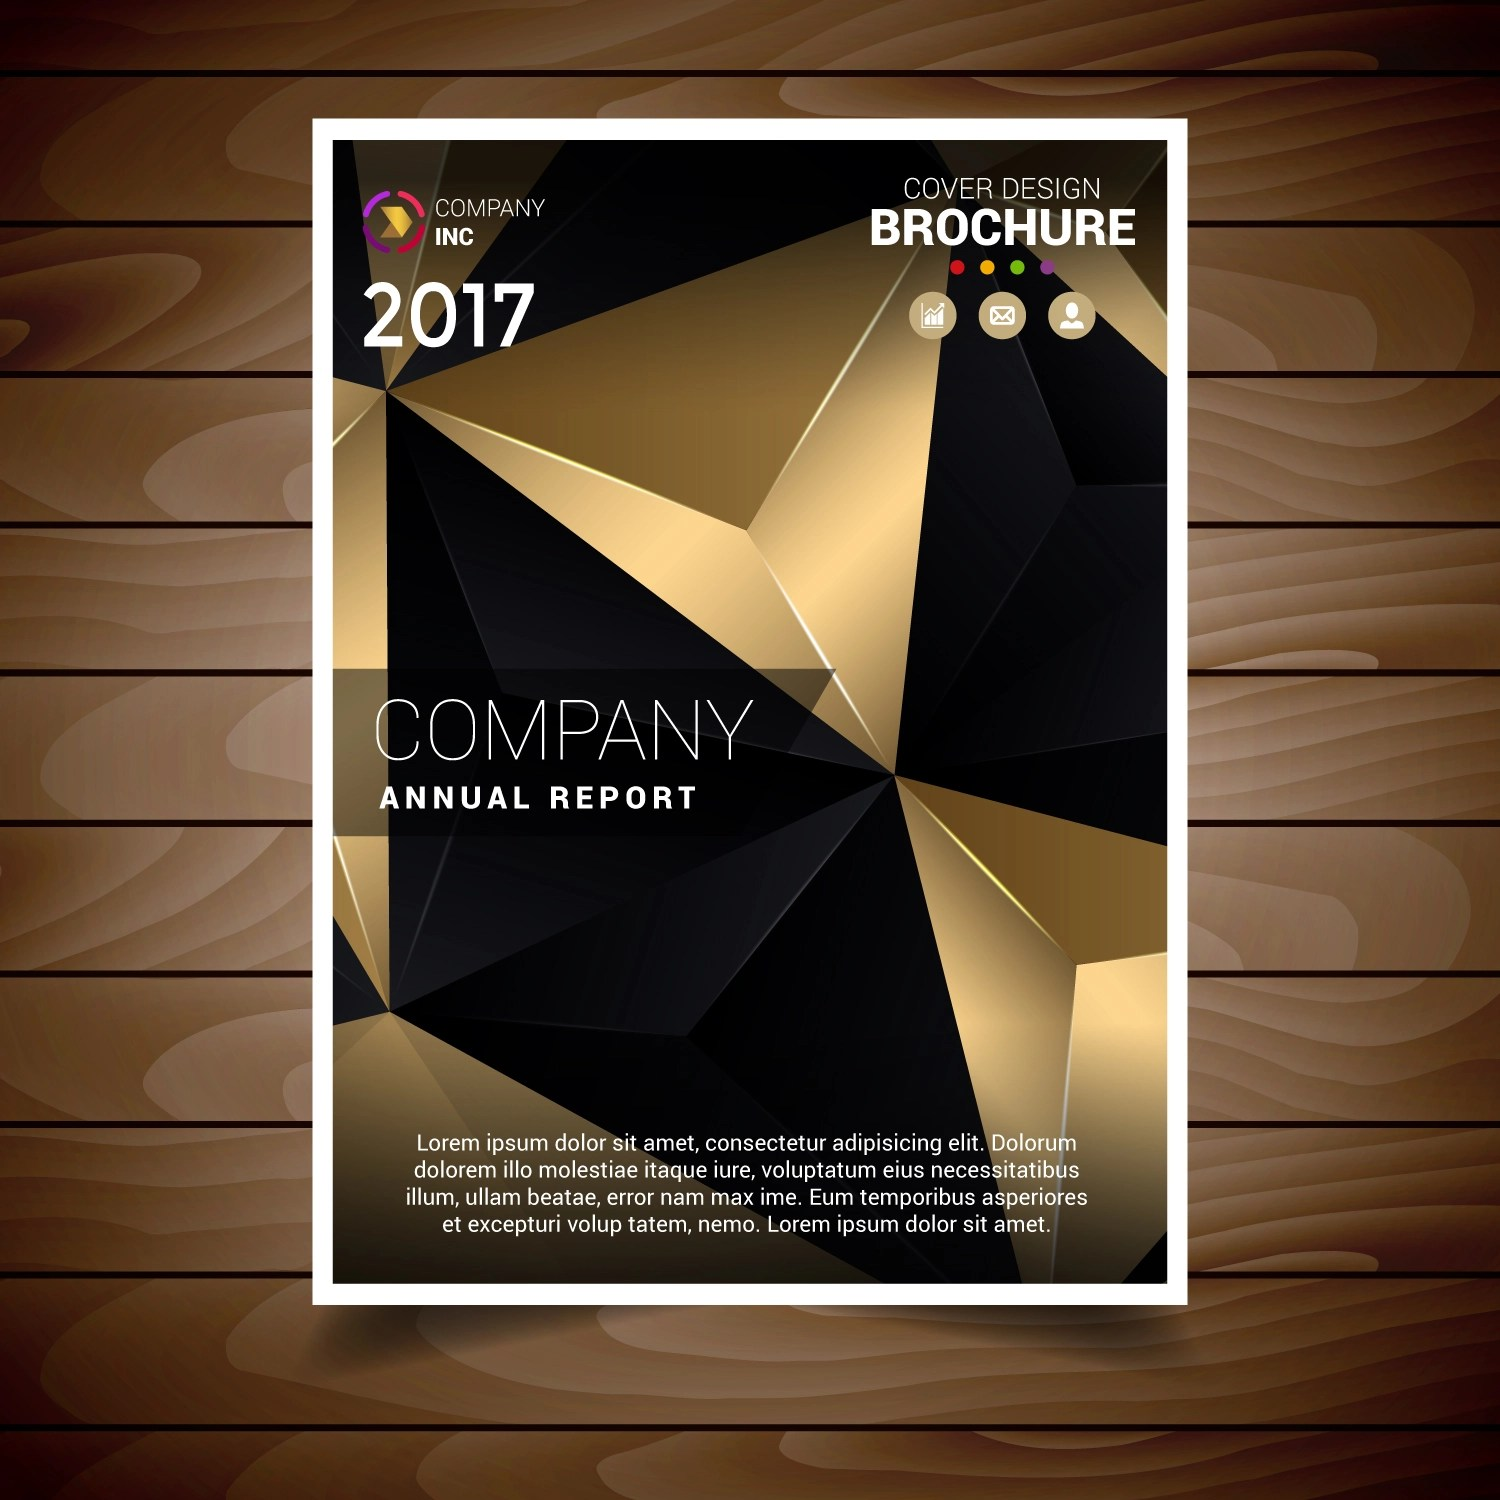 Gold And Blank Abstract Triangles Brochure Design Template Download Free Vector Art Stock